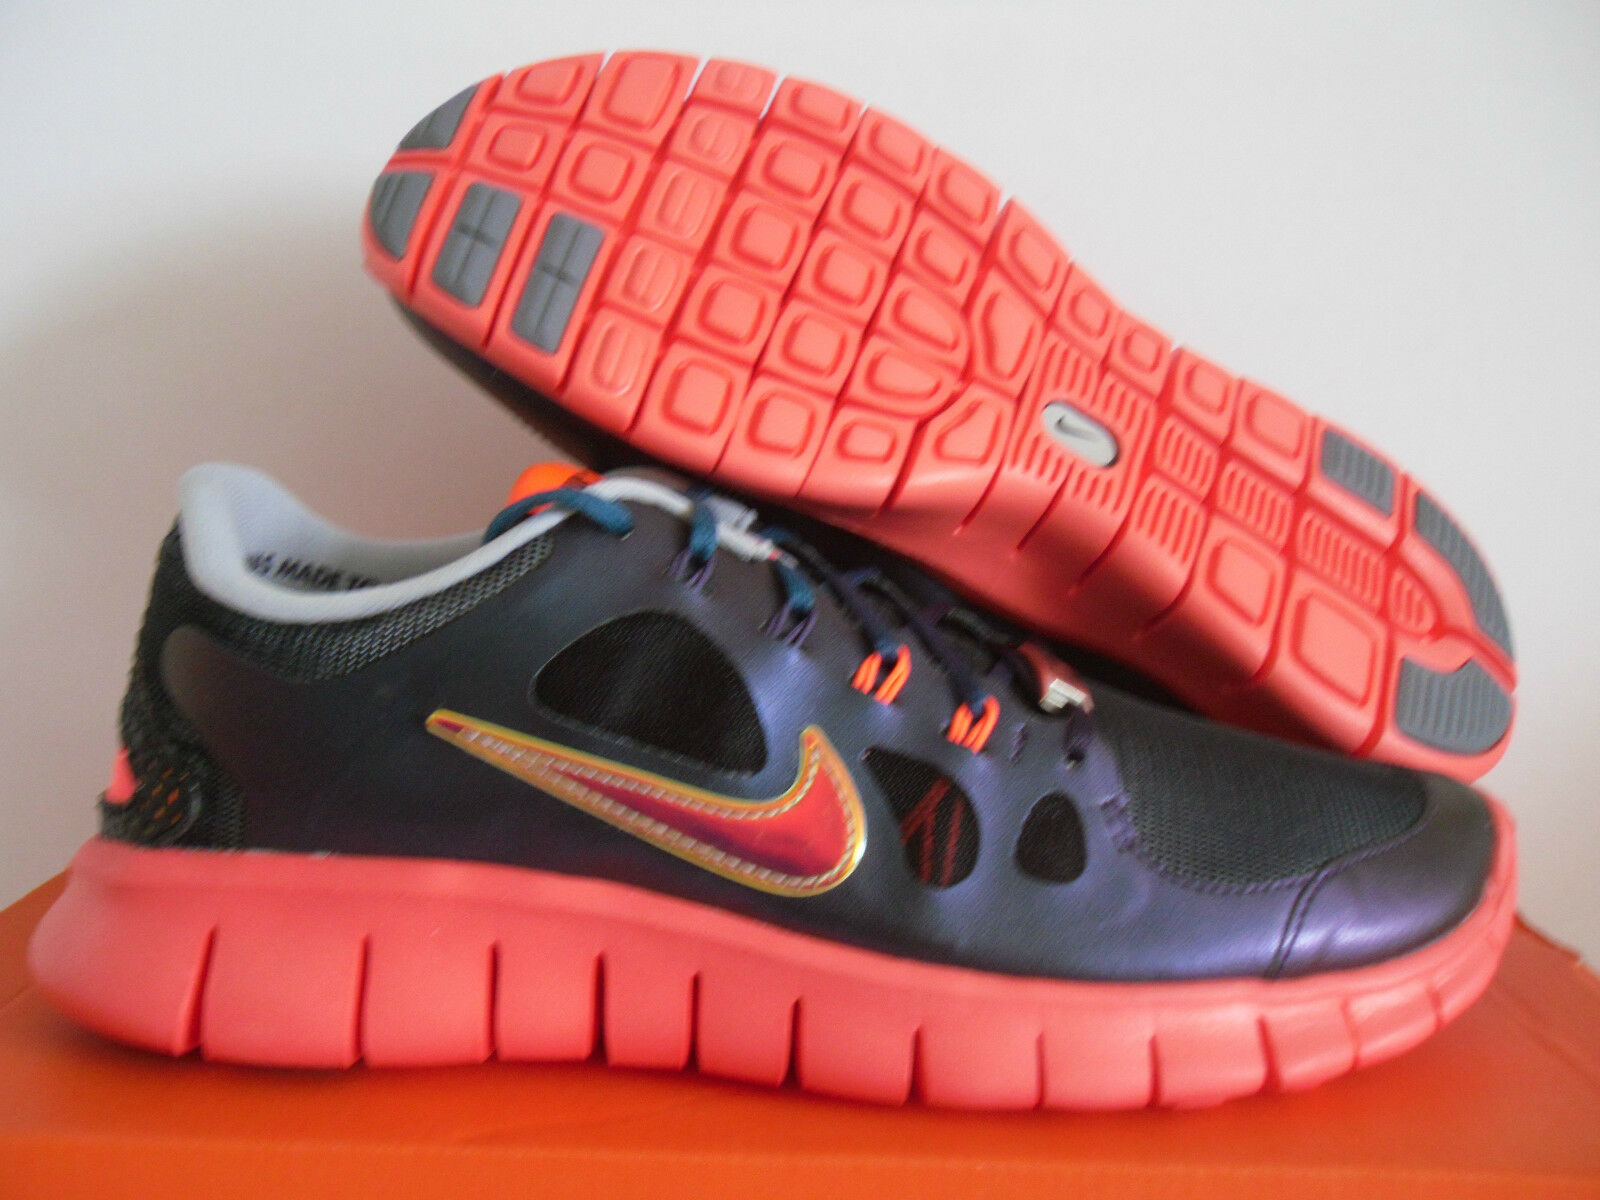 NIKE FREE 5.0 DB (GS) JAKE WOLF GREY-CRIMSON SZ 5Y-WOMENS SZ 6.5 [639871-065]